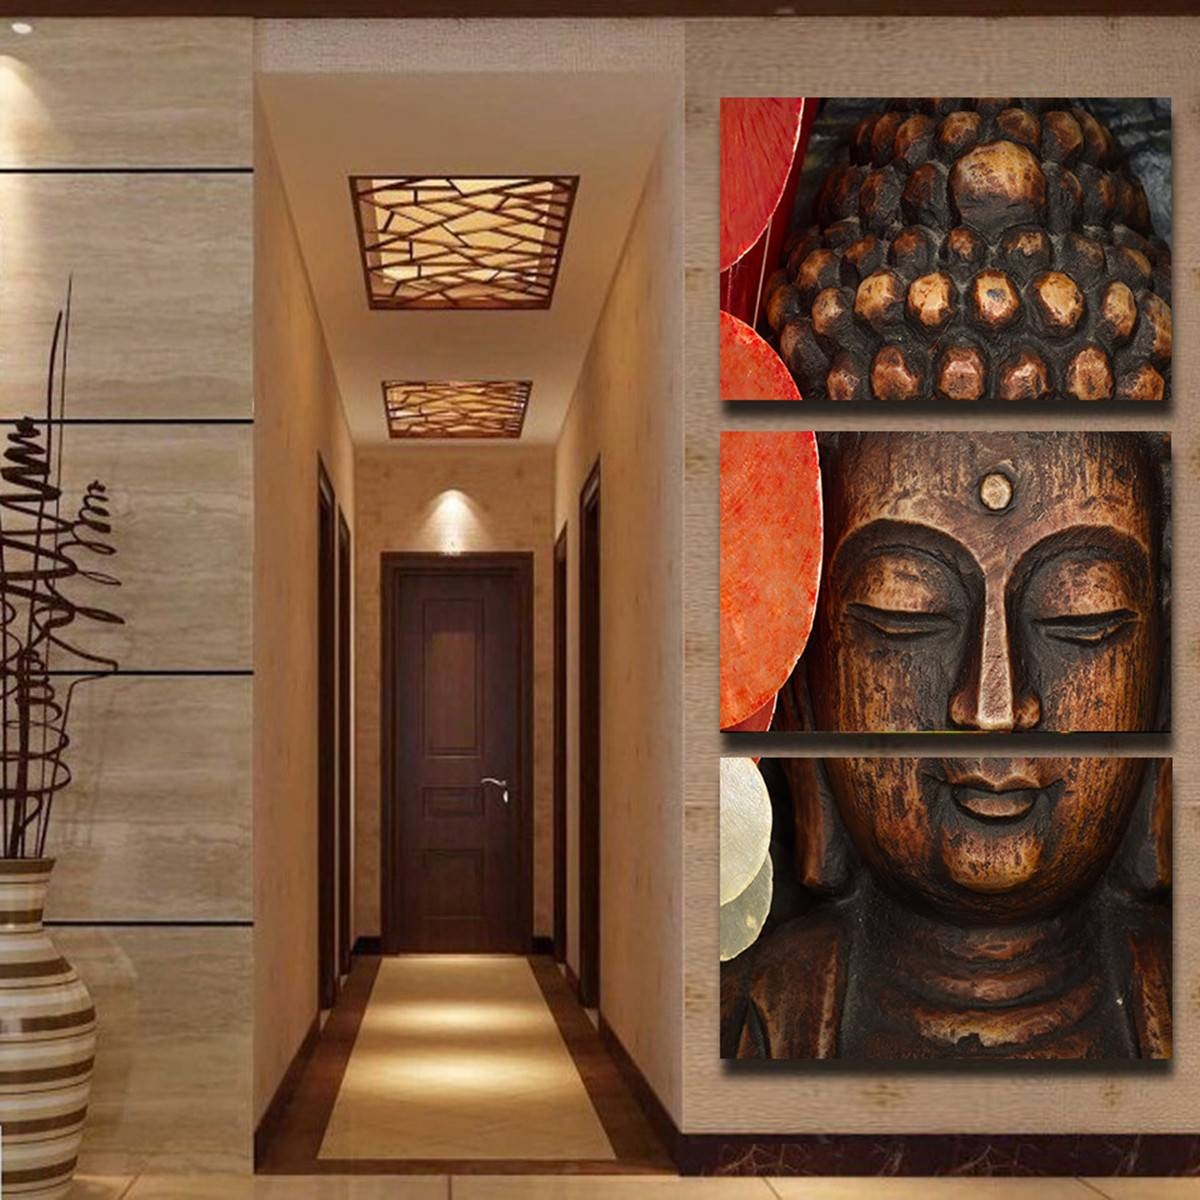 Jermyn 3 Piece Wall Art Diy 3D Buddha Oil Painting Hd Canvas Print Intended For Latest 3D Buddha Wall Art (Gallery 2 of 20)